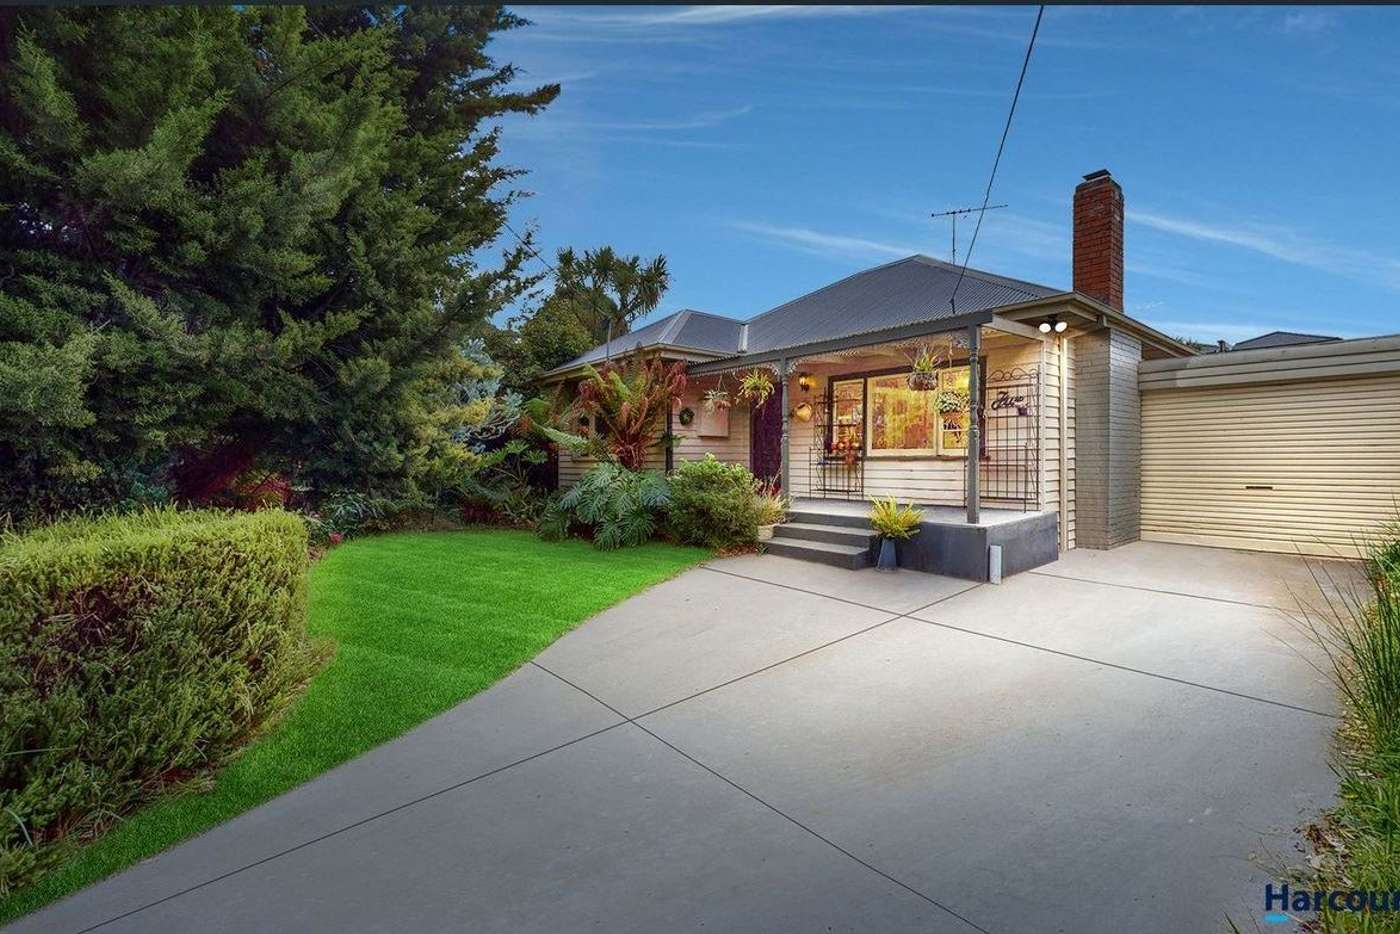 Main view of Homely house listing, 5 Kershaw Street, Bentleigh East VIC 3165